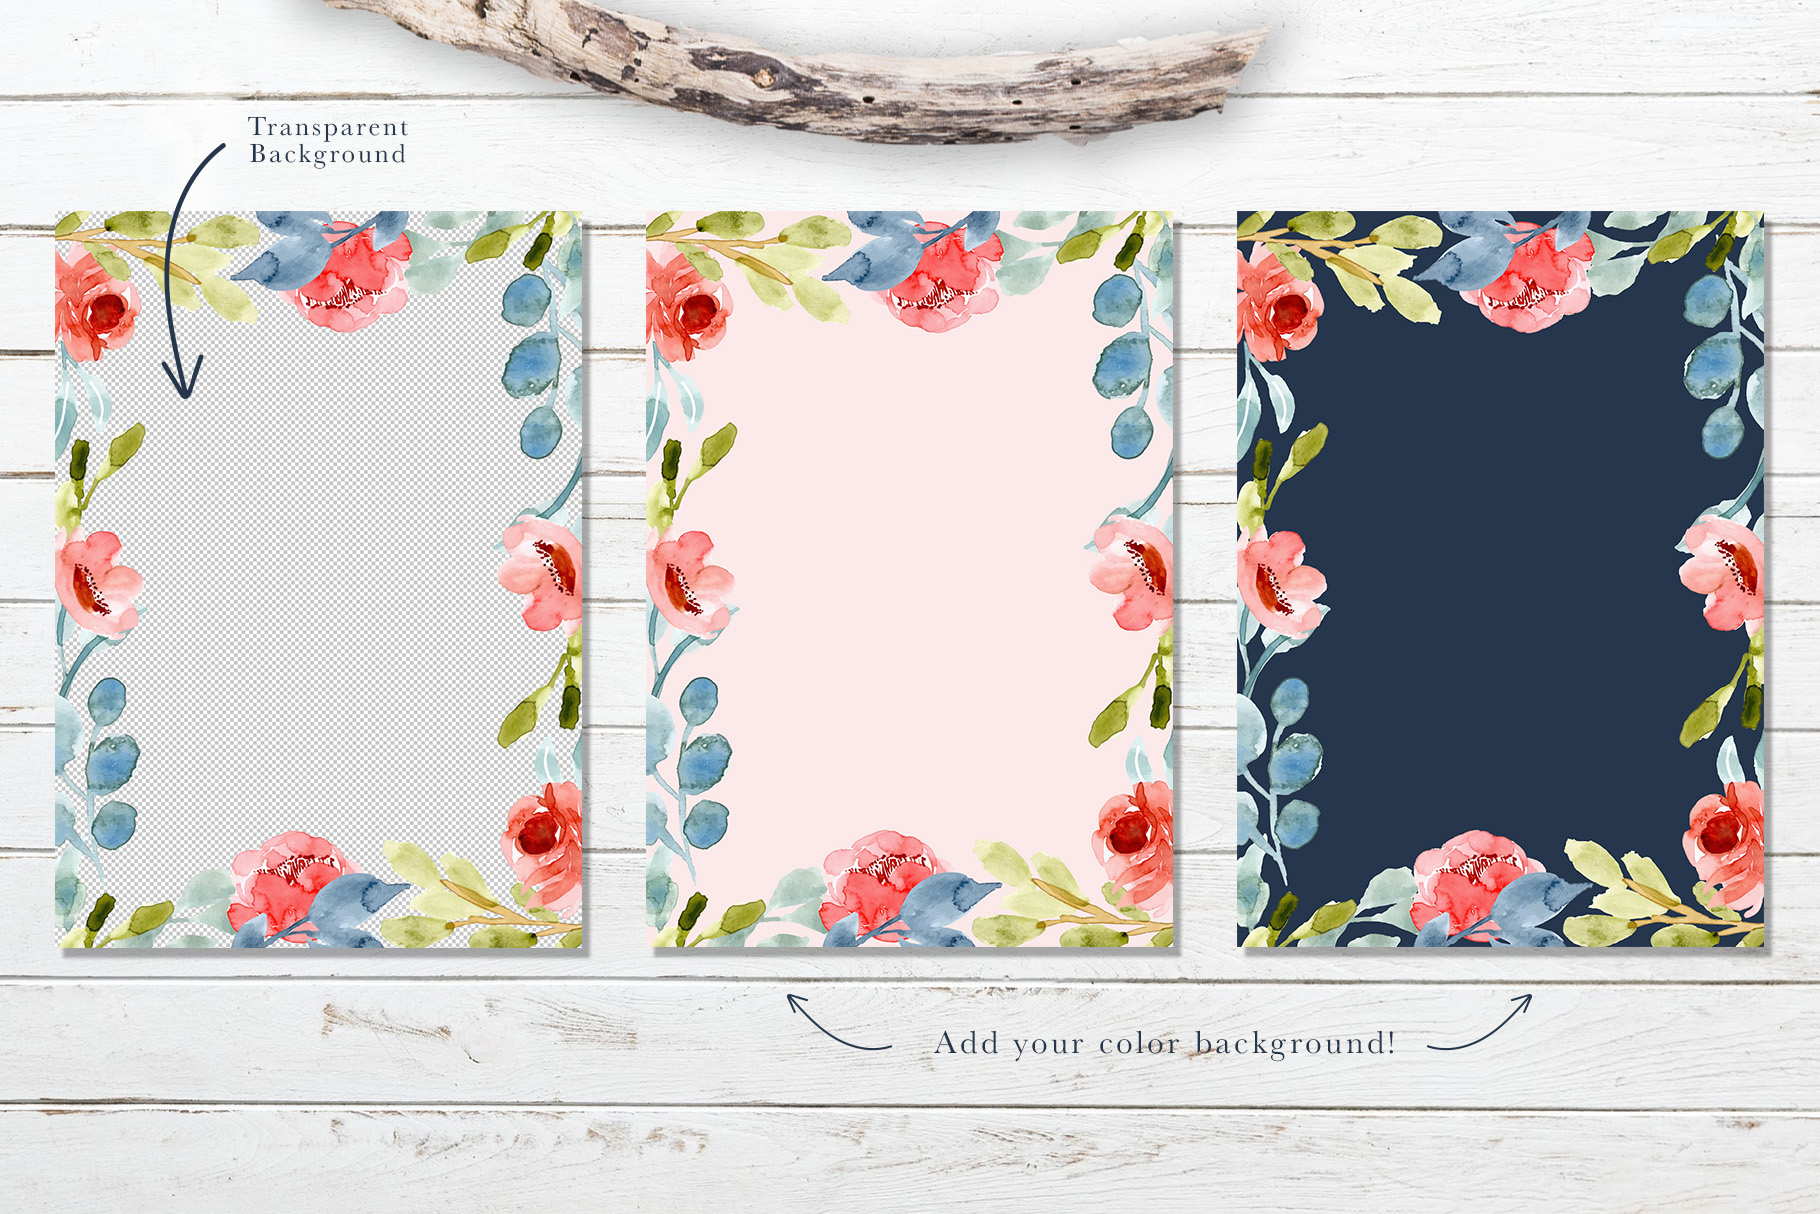 Floral Invitation Backgrounds Vol.3 example image 7